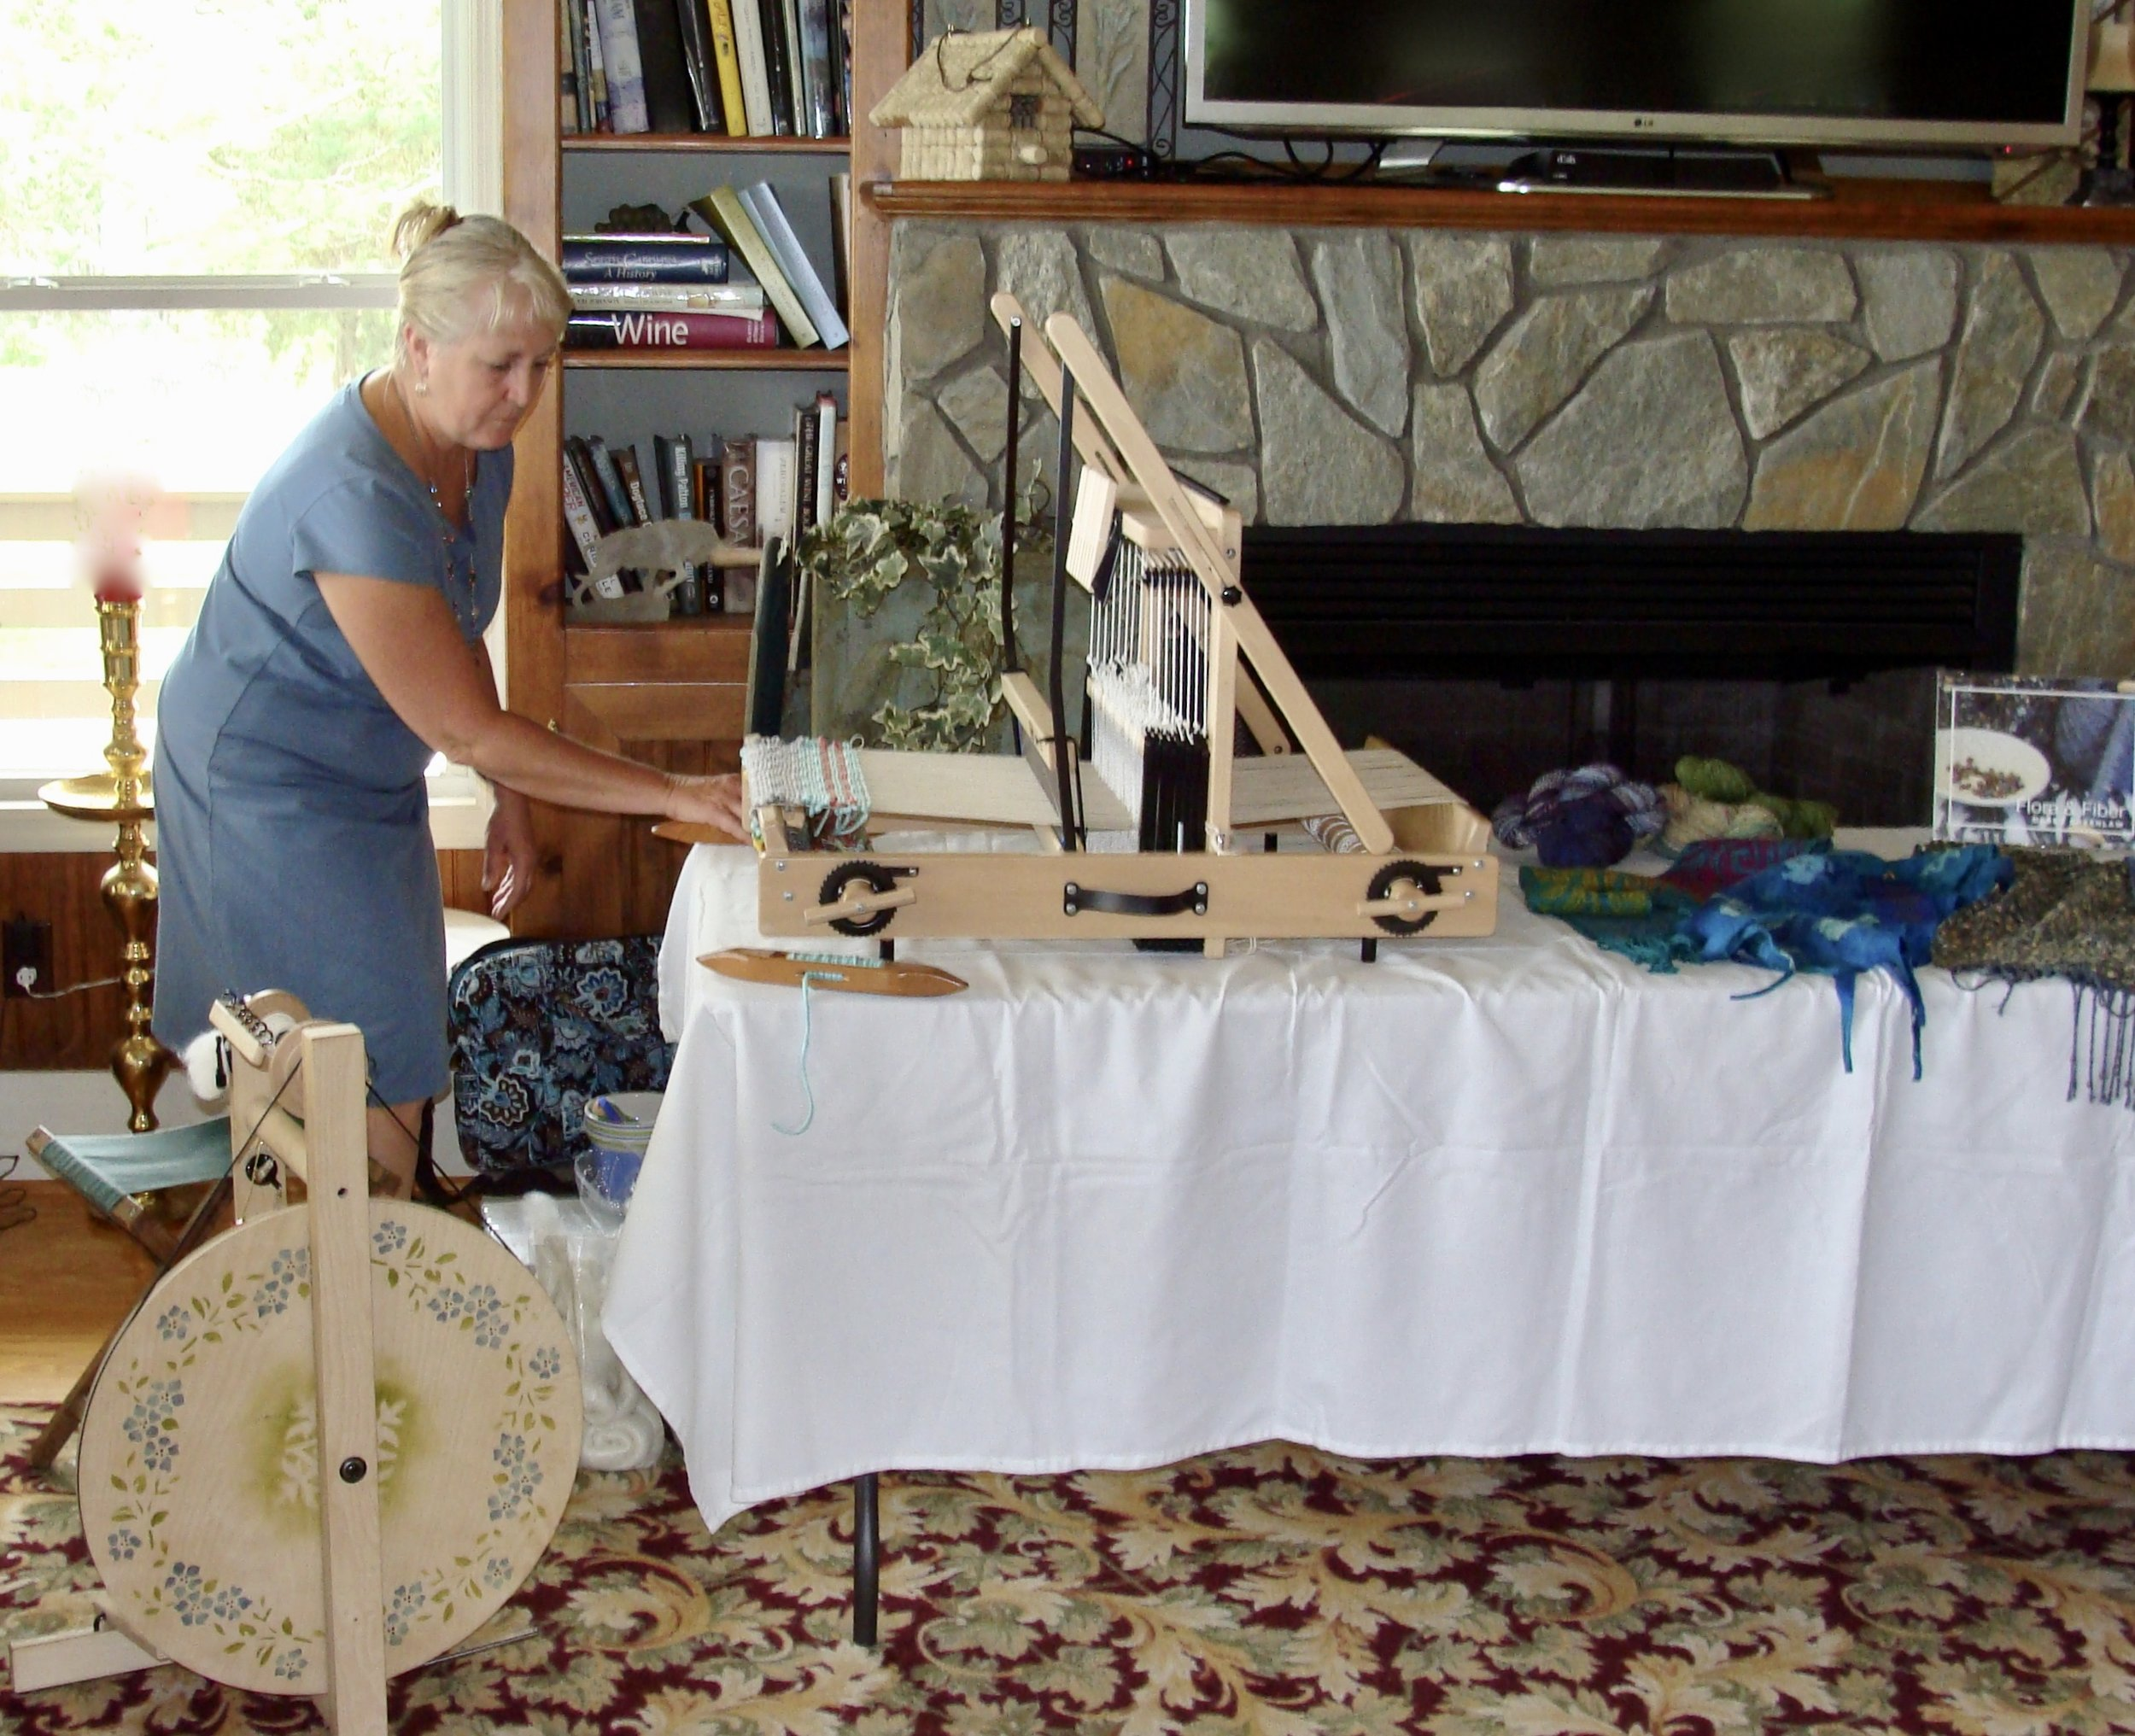 Weaving & Spinning demo @ Enoree River Winery - Newberry Ag + Art Tour